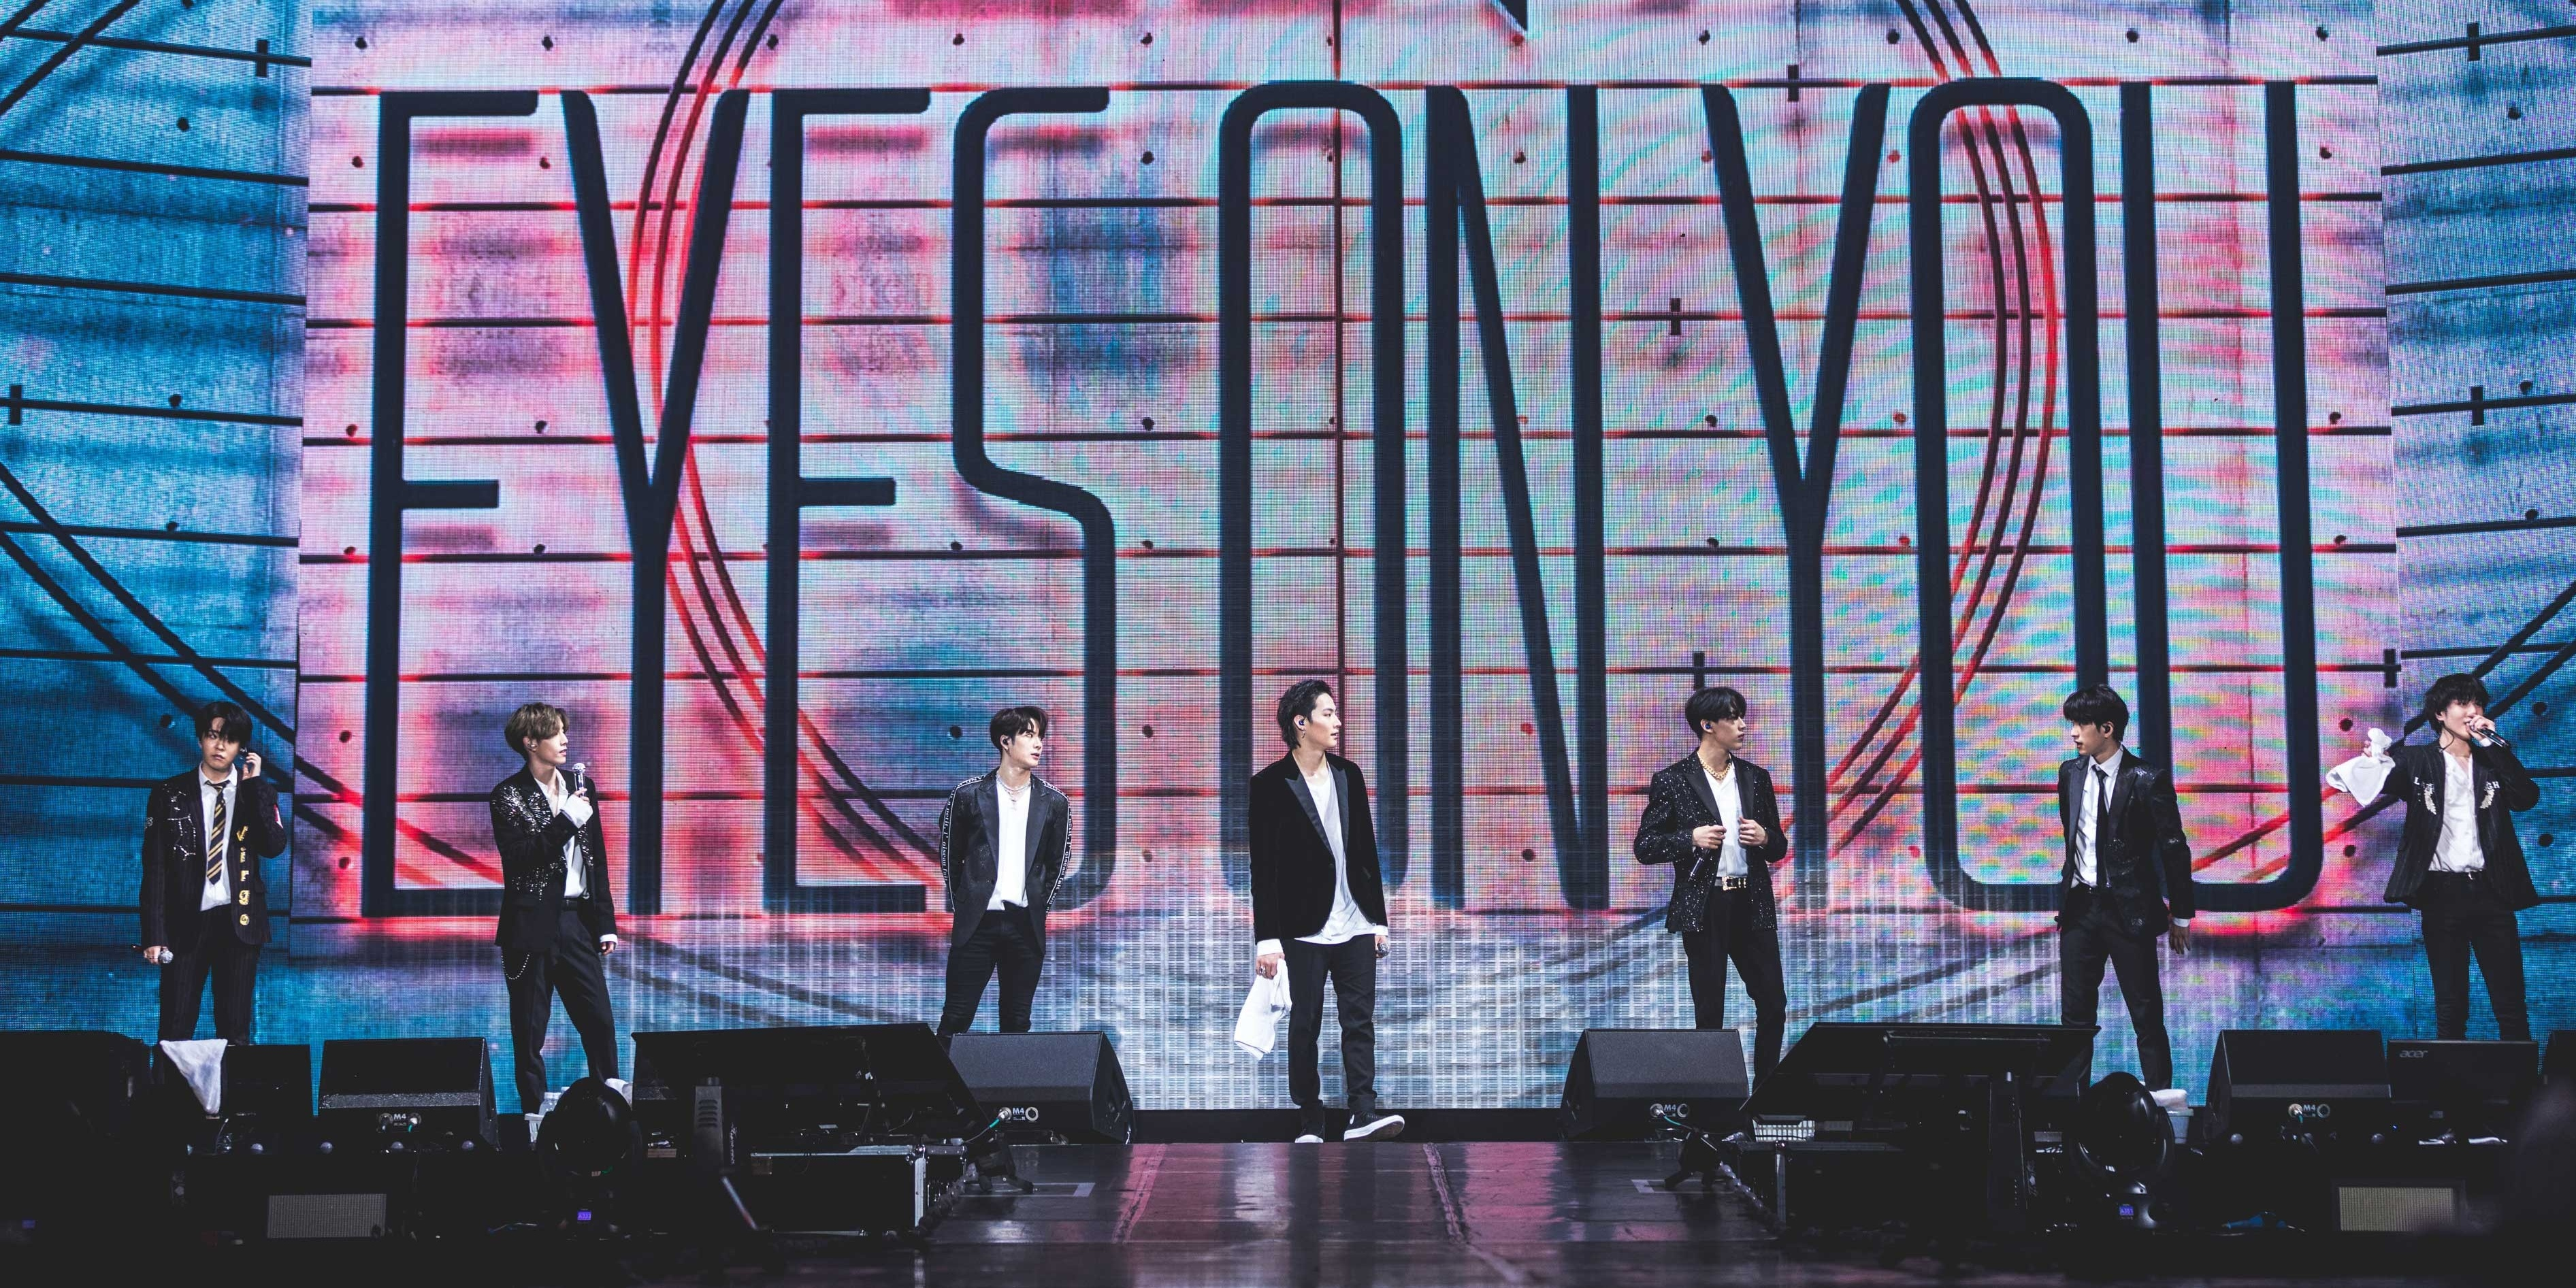 GOT7 mesmerizes the crowd at Singapore stop for 'Eyes On You' tour - gig report